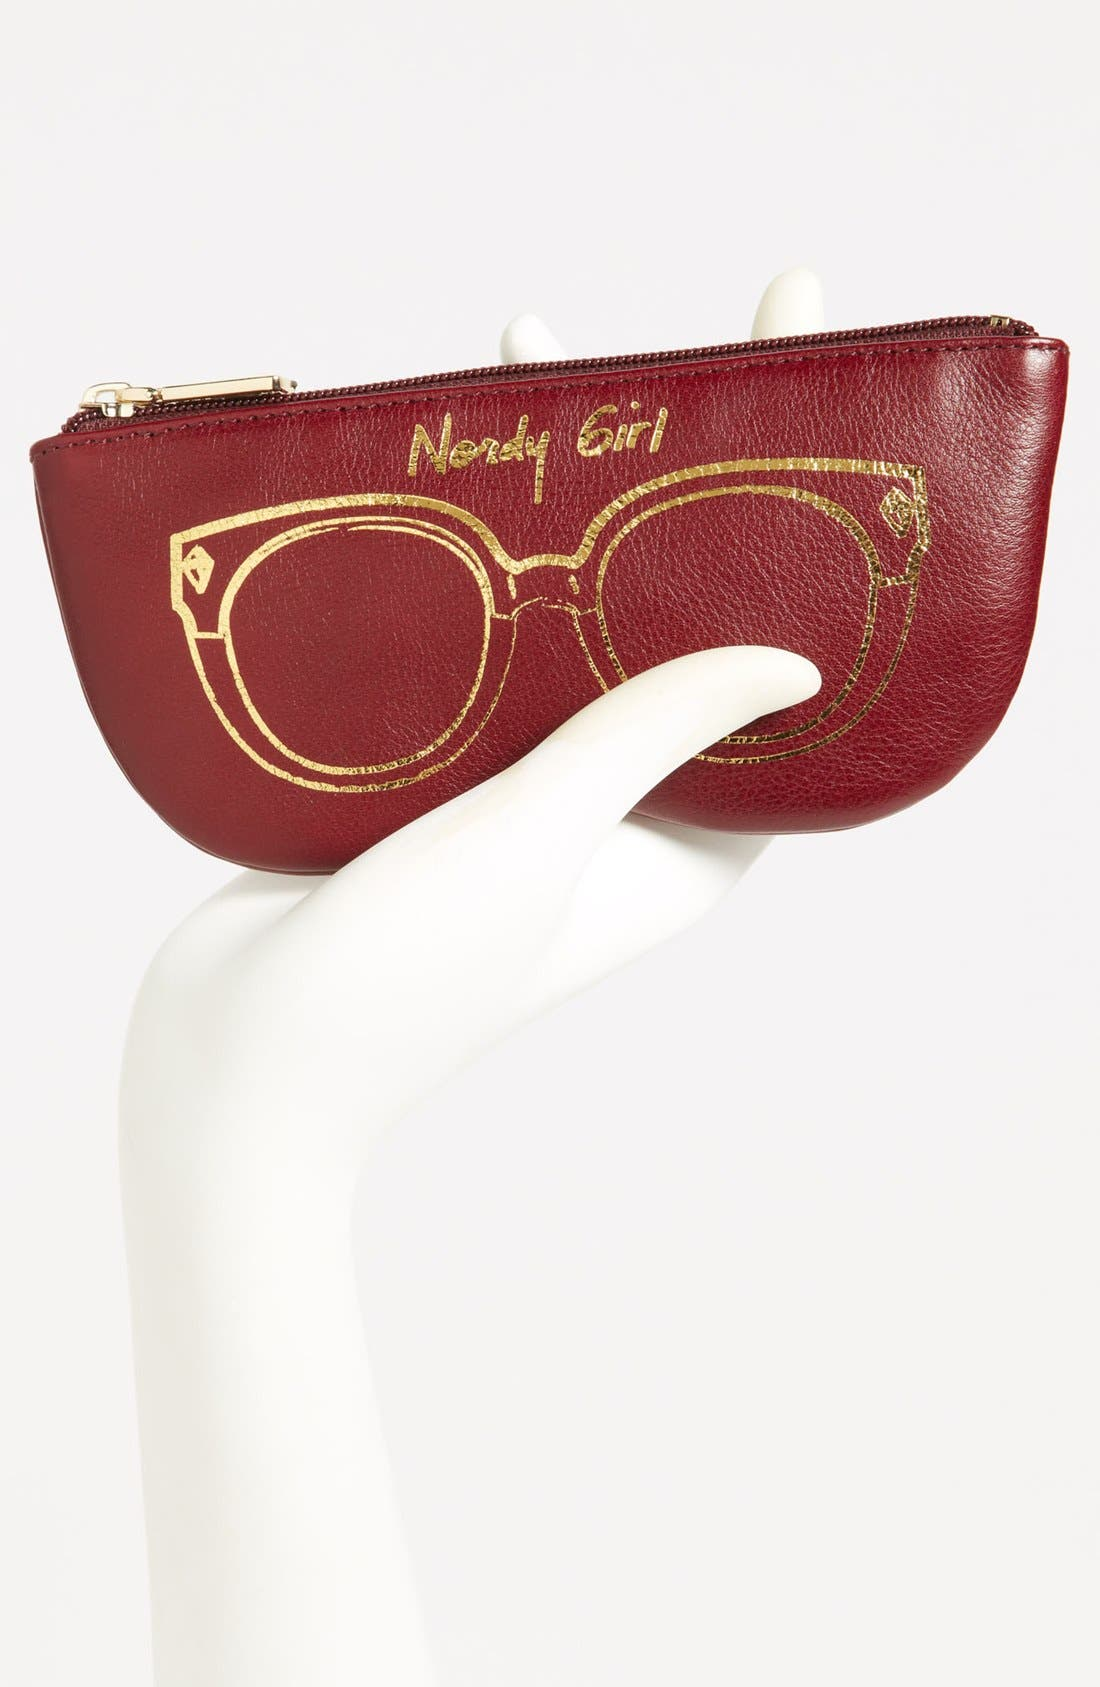 Alternate Image 2  - Rebecca Minkoff 'Nordy Girl' Leather Sunglasses Case